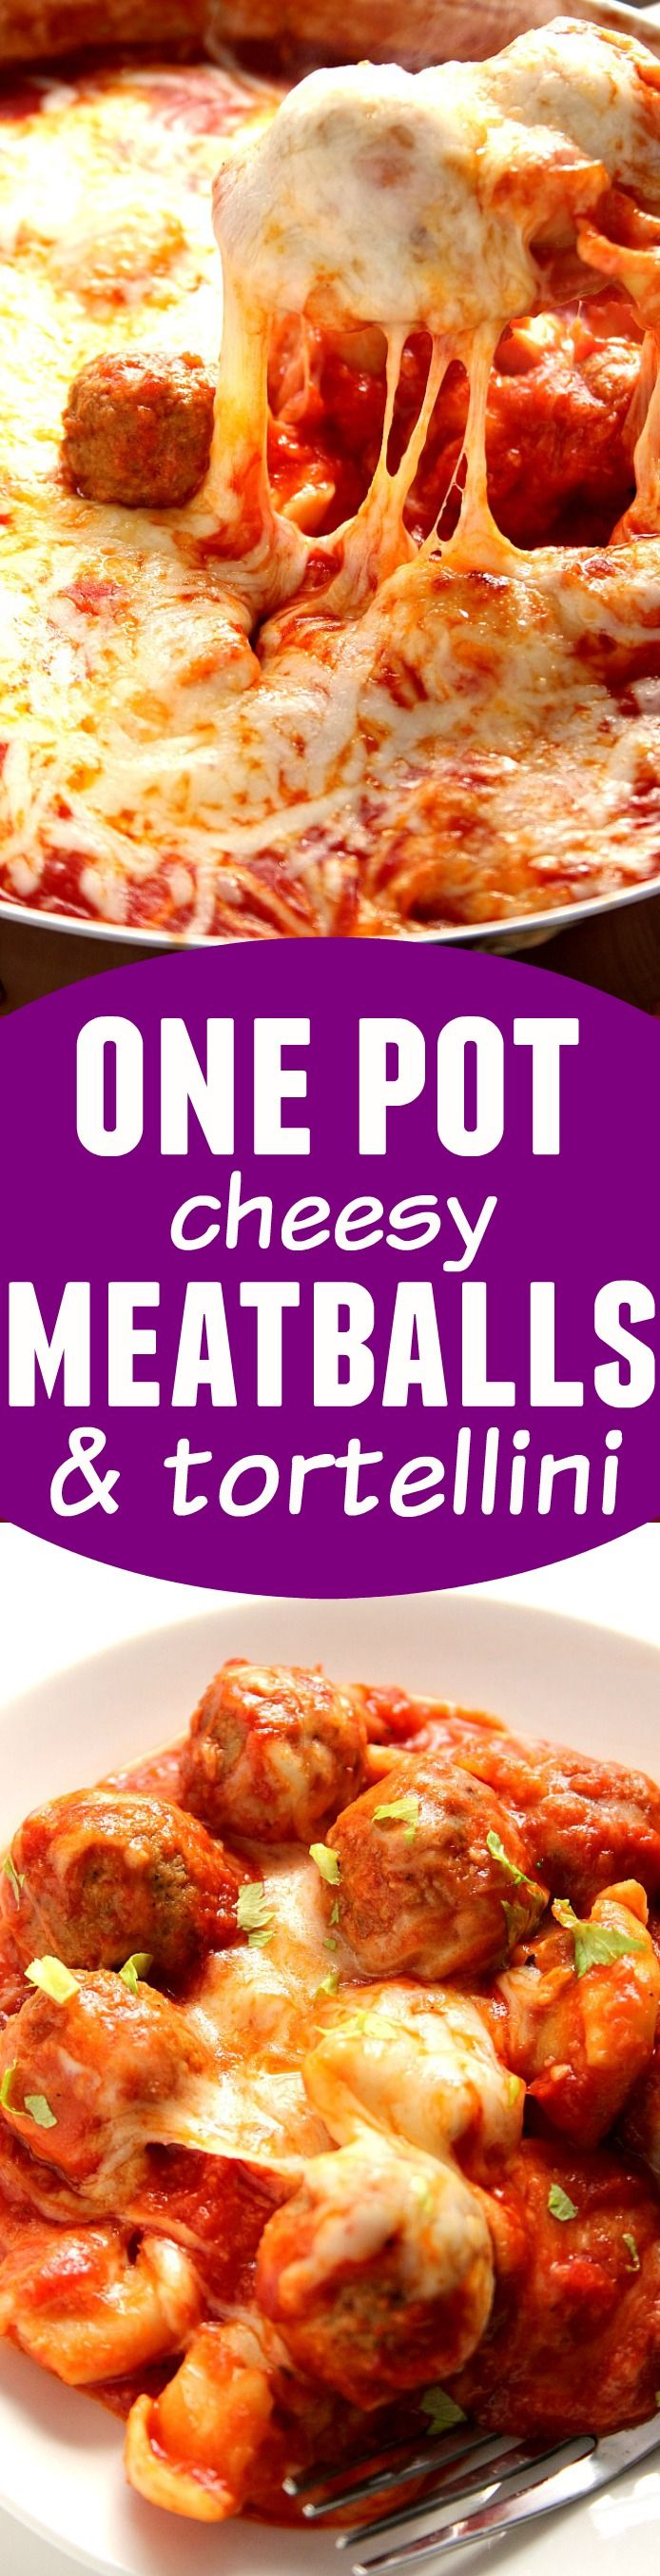 One Pot Cheesy Tortellini and Meatballs